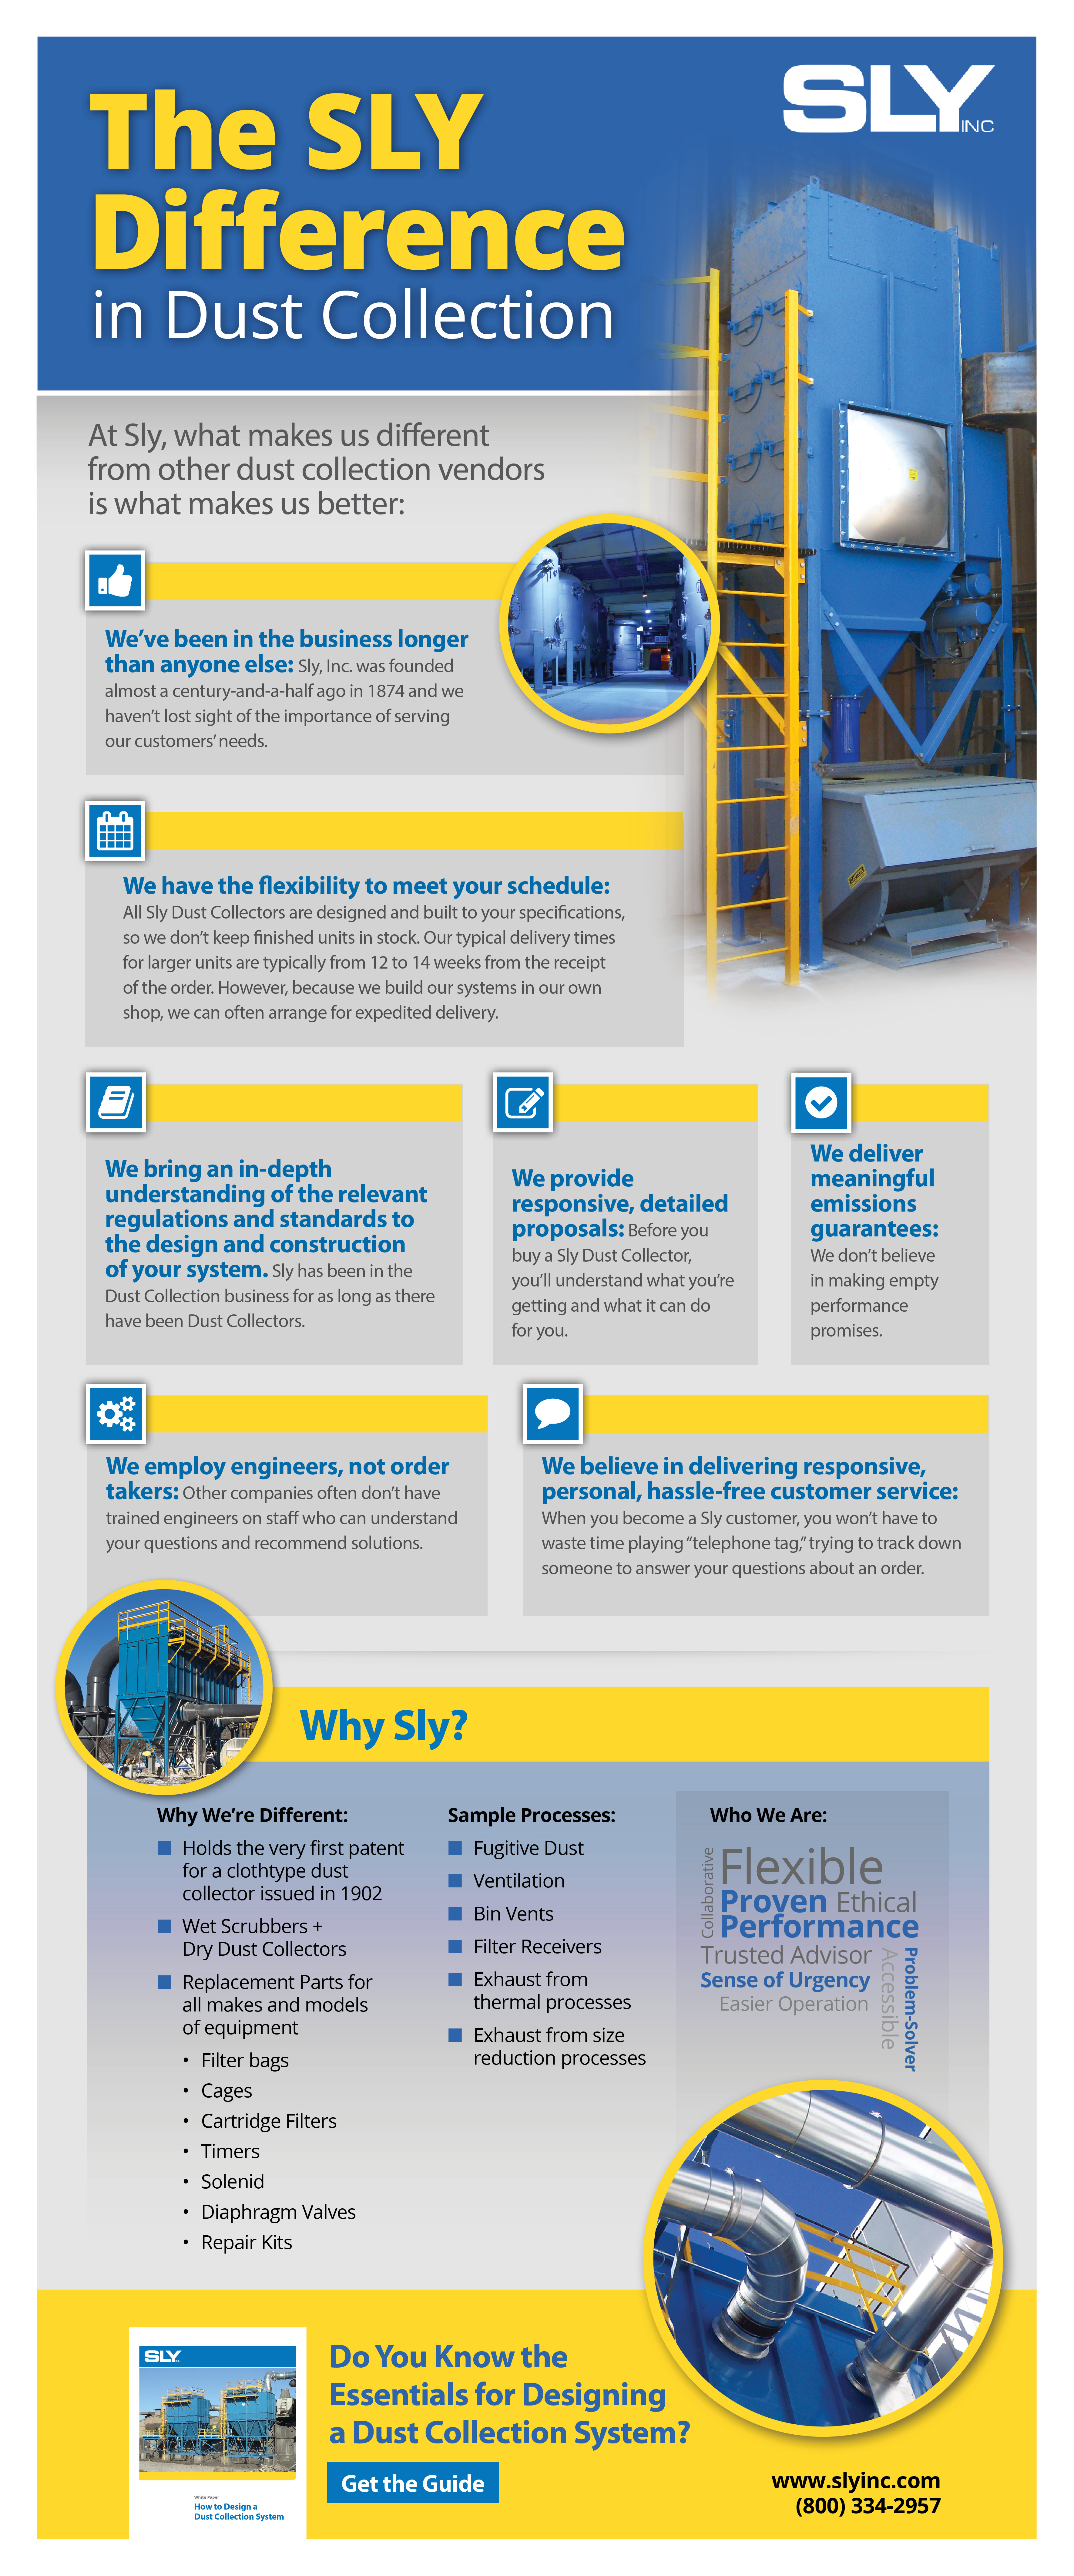 SlyDifference_Infographic_v4